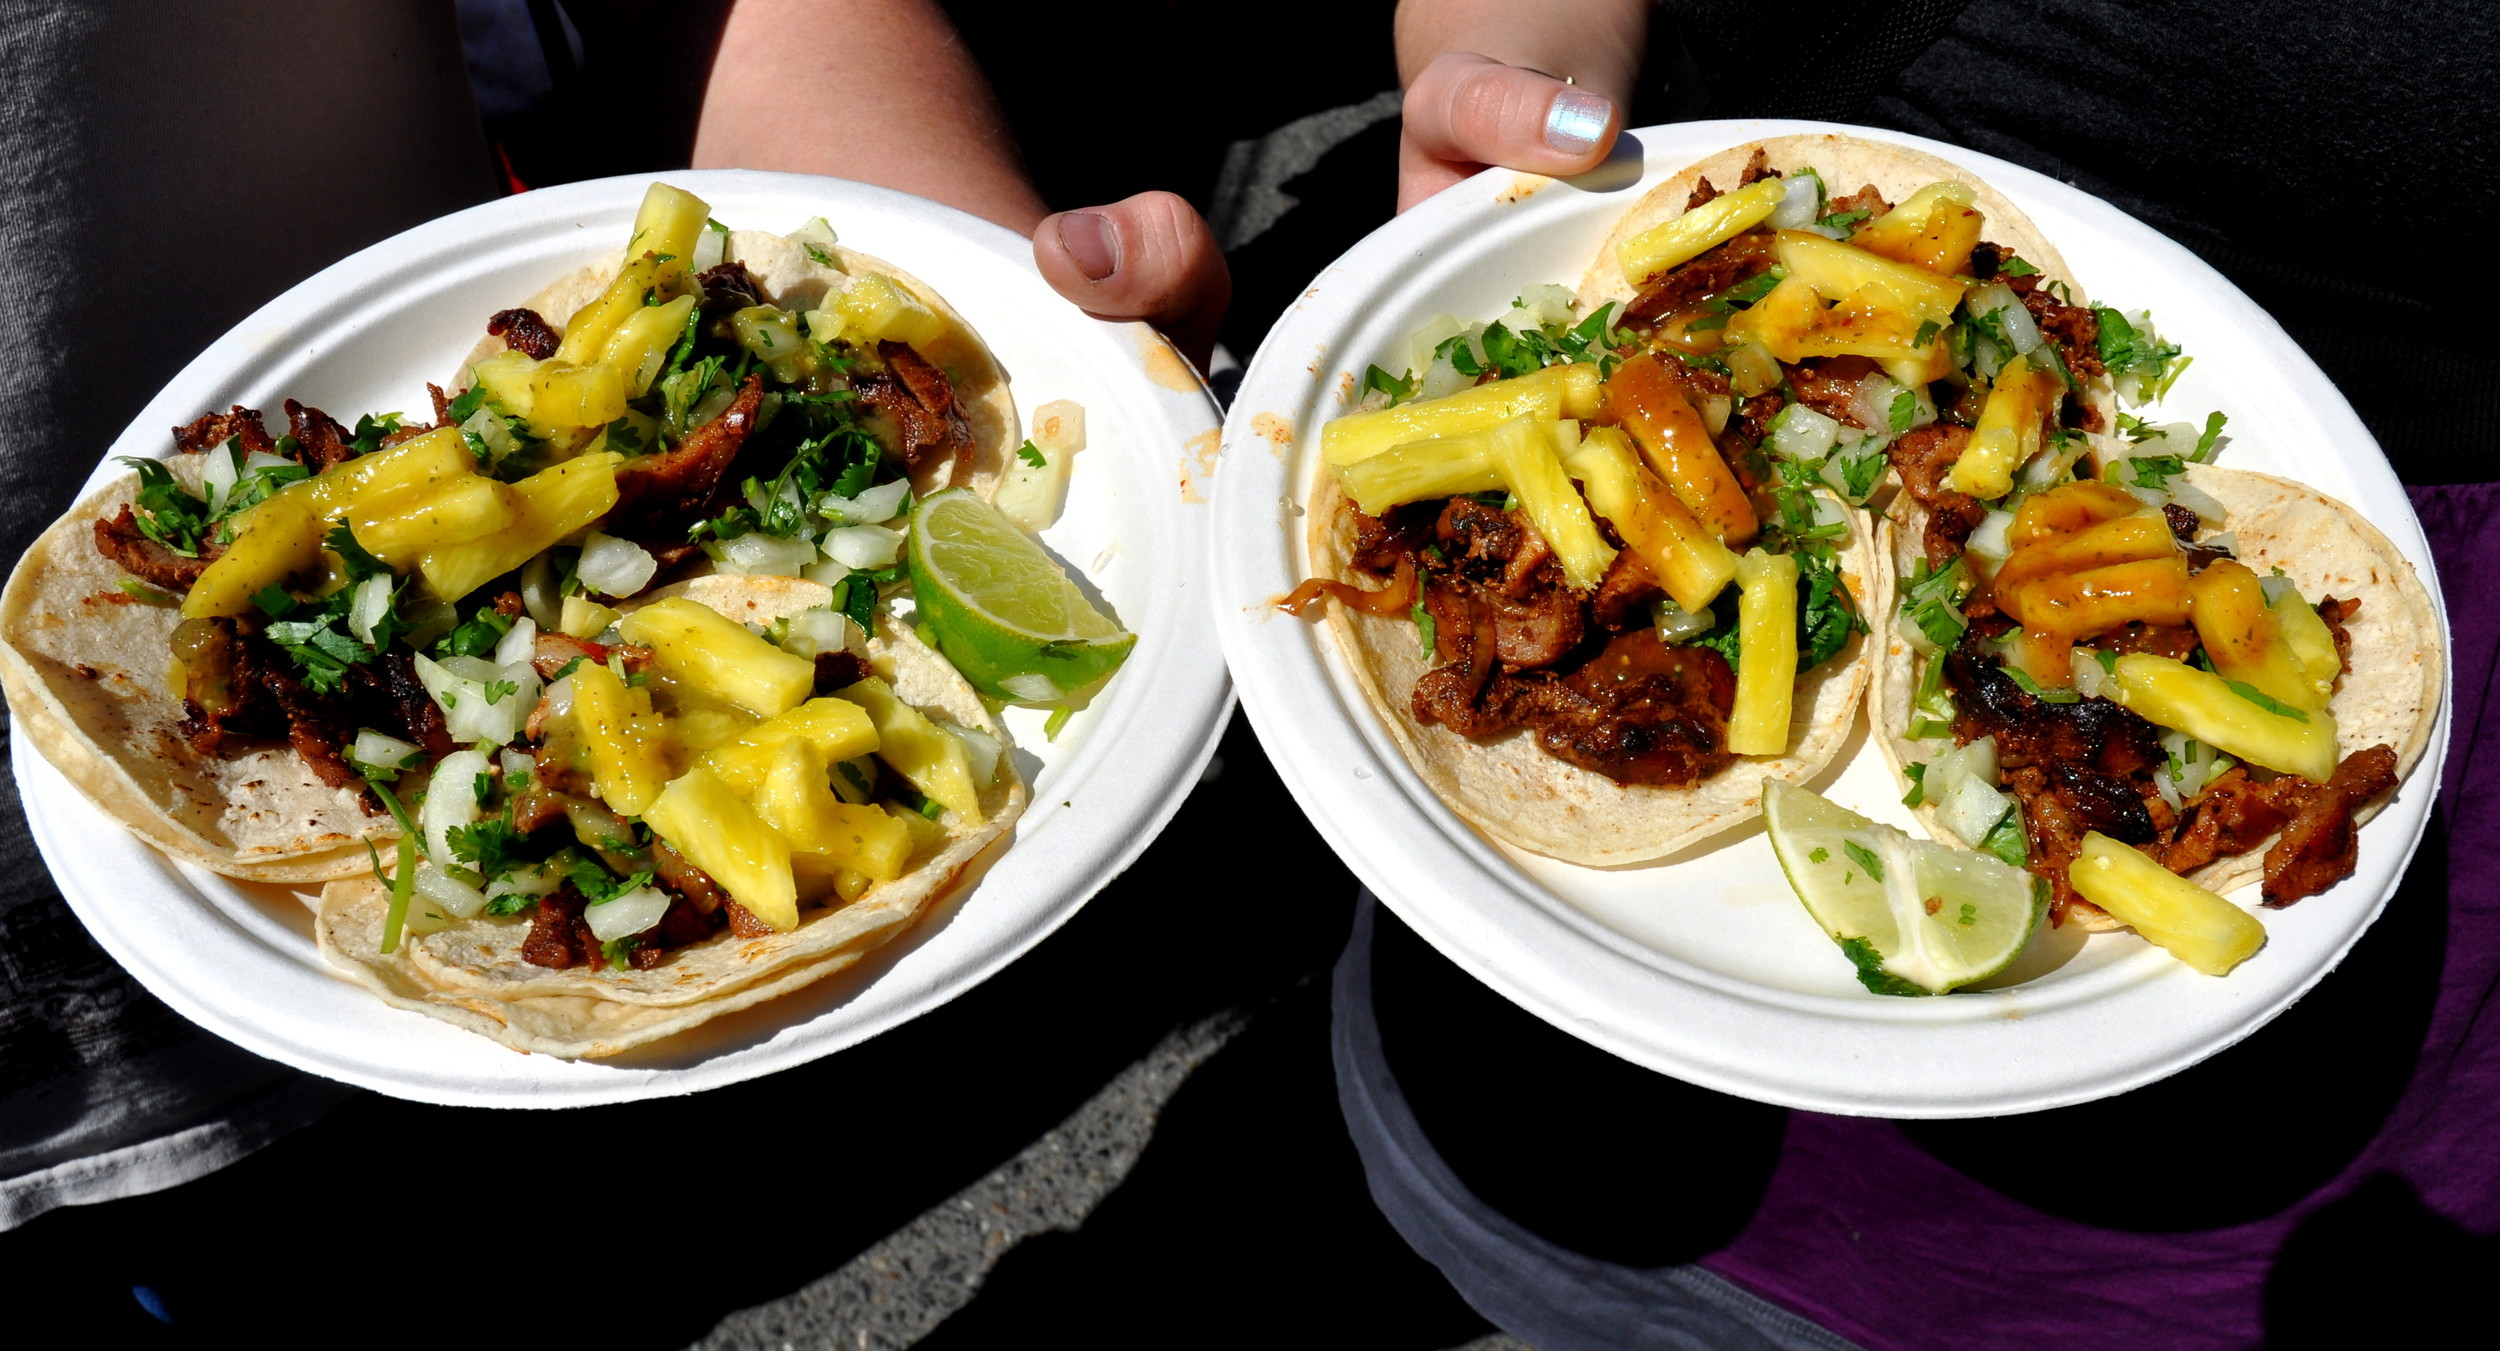 Tacos from Los Chilangos. Photo copyright 2013 by Zachary D. Lyons.